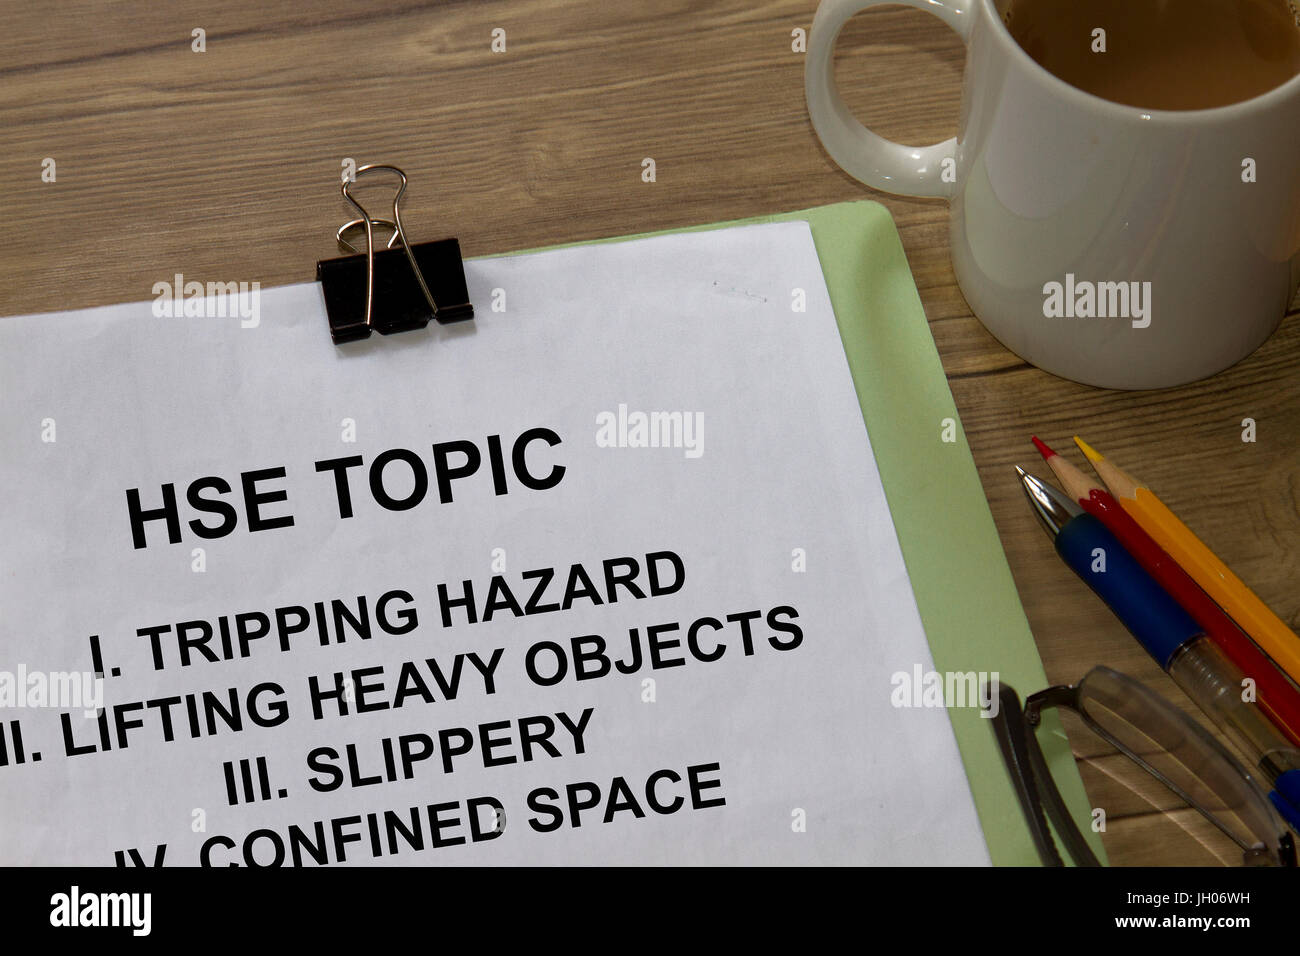 Health safety and environment topic with coffee and table. - Stock Image